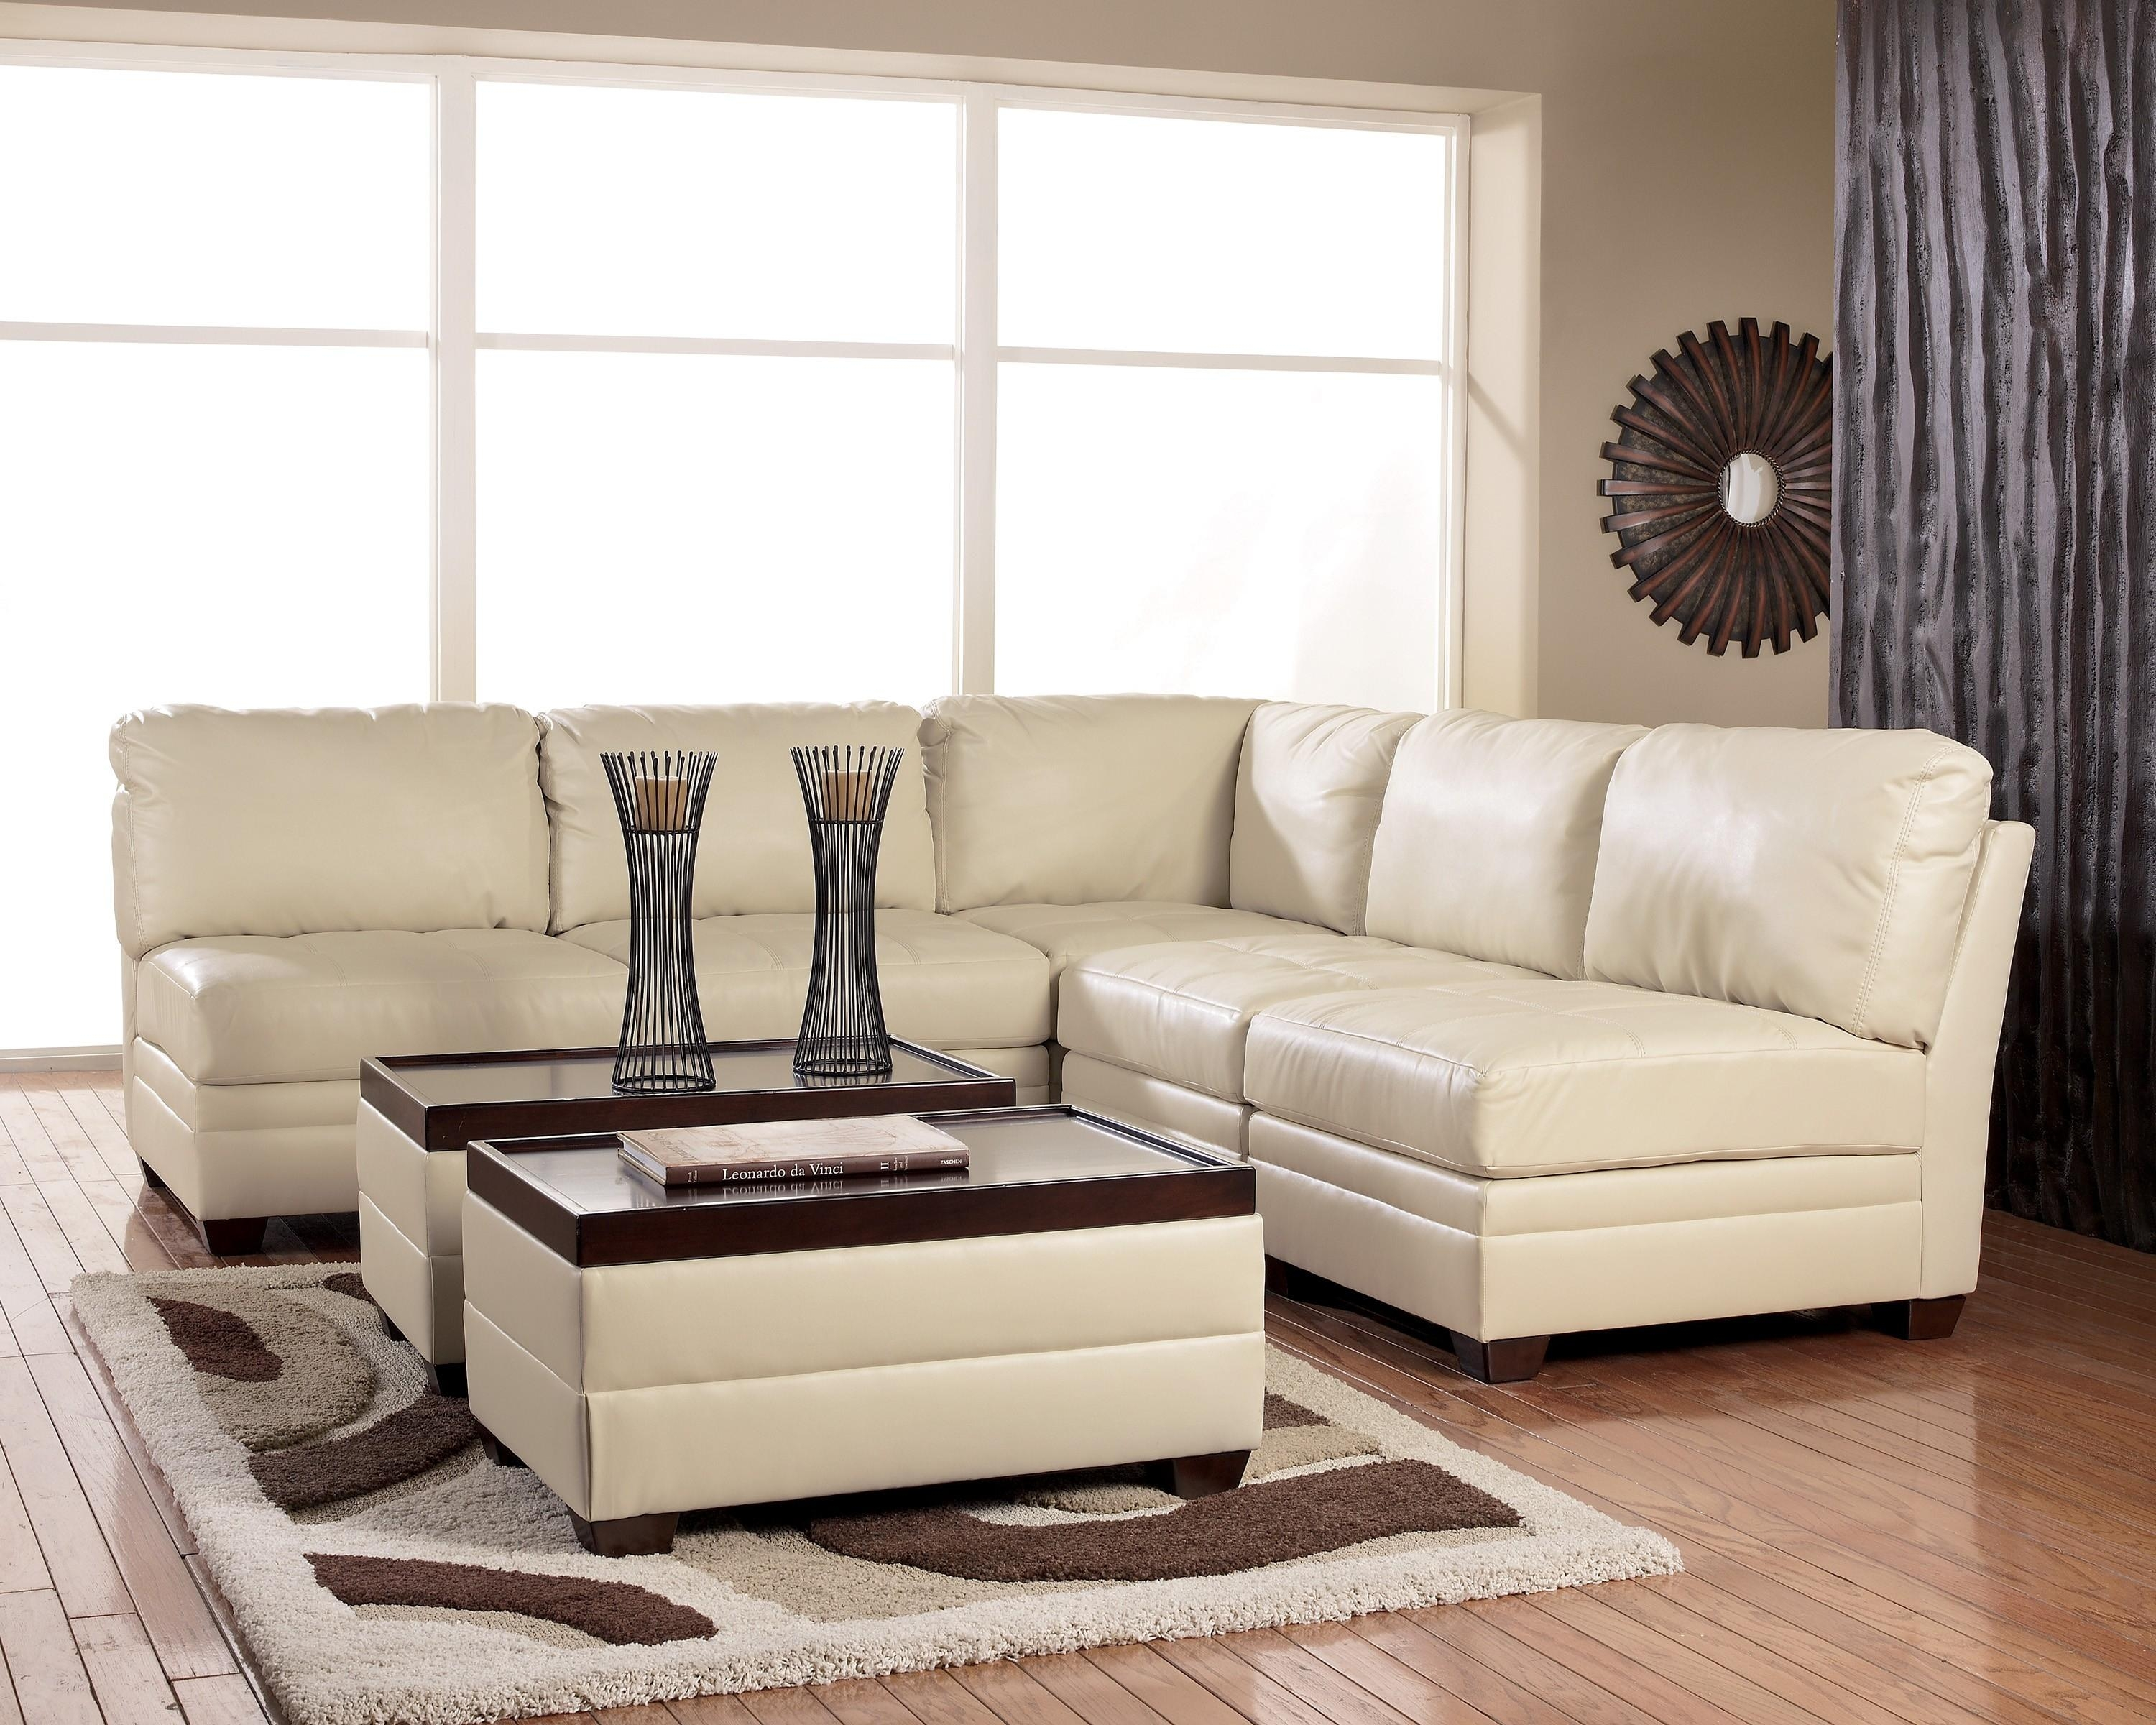 couches attachment furniture ashley room of sofas gallery sofa luxury ideas at within photo sectionals showing sectional and living